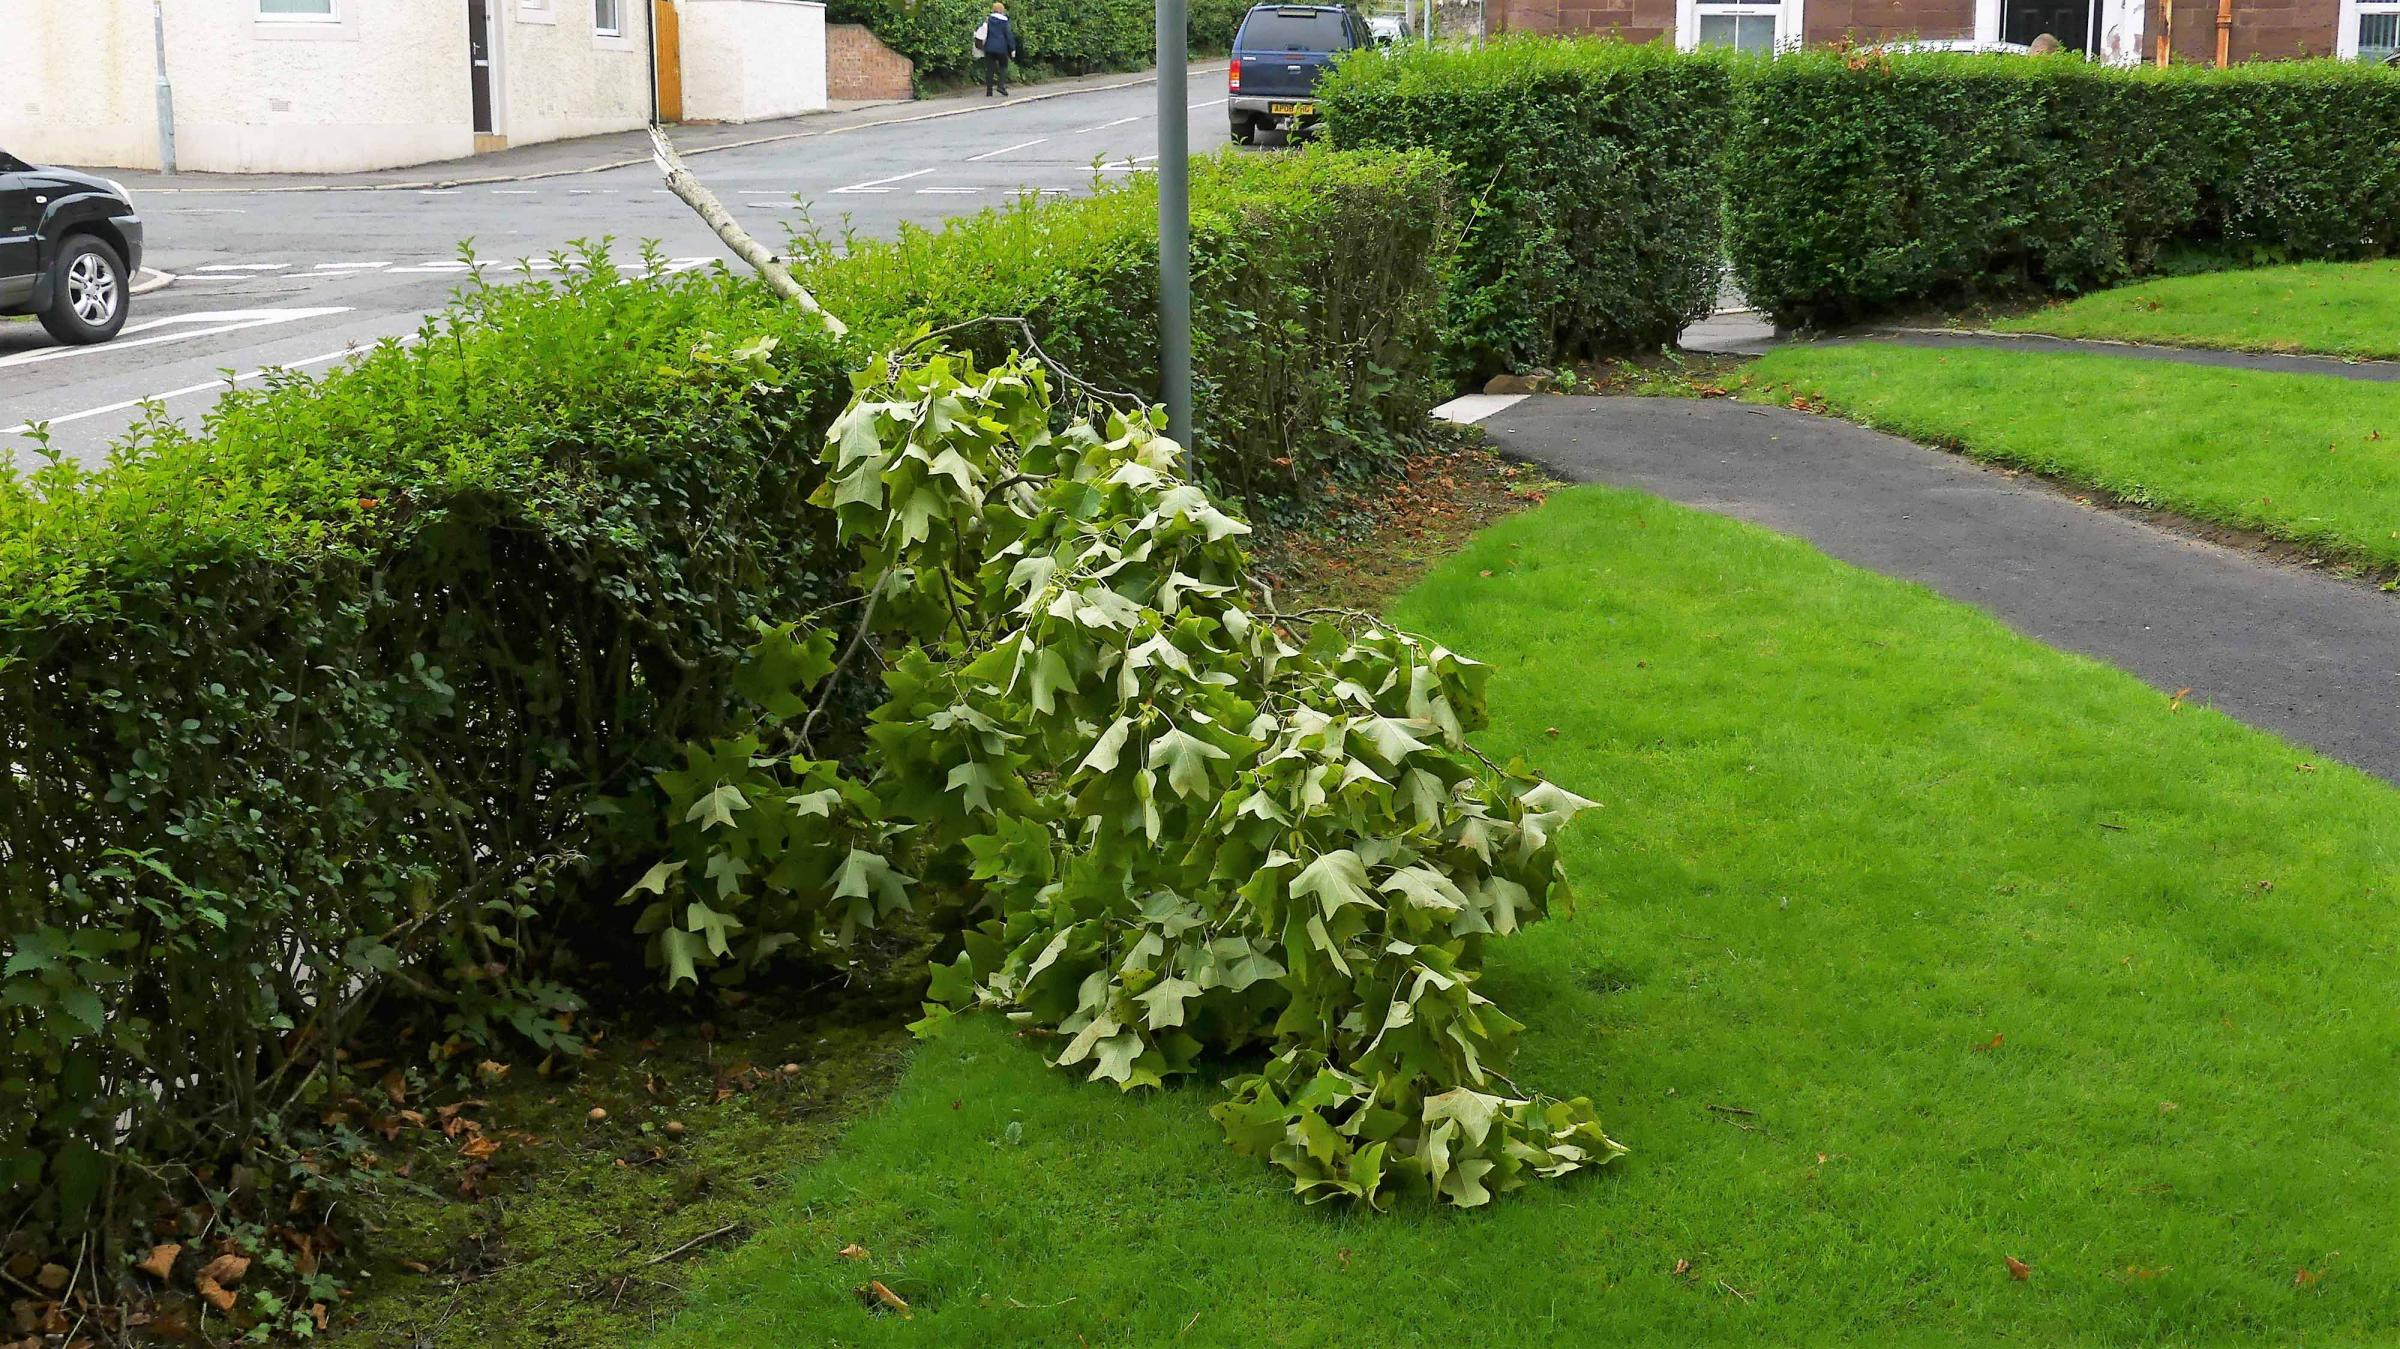 Greenside improvement plans thwarted by tree vandals